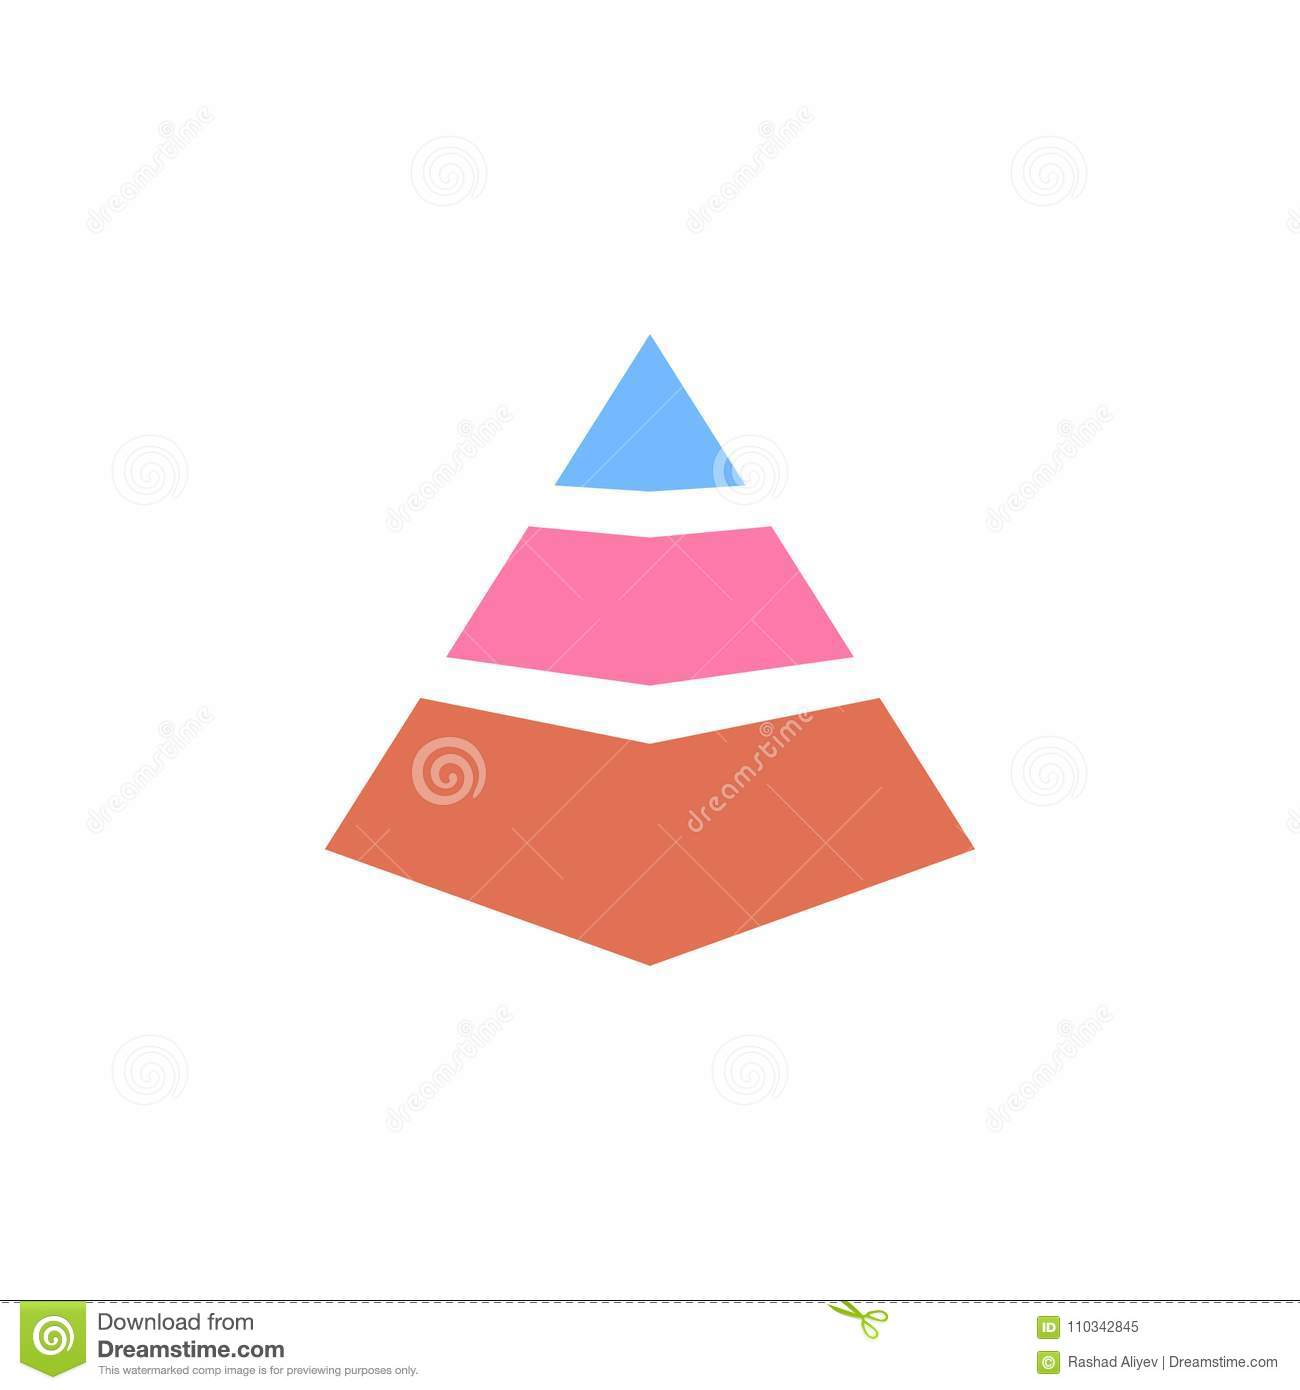 3d pyramid diagram icon  element of colored charts and diagrams for mobile  concept and web